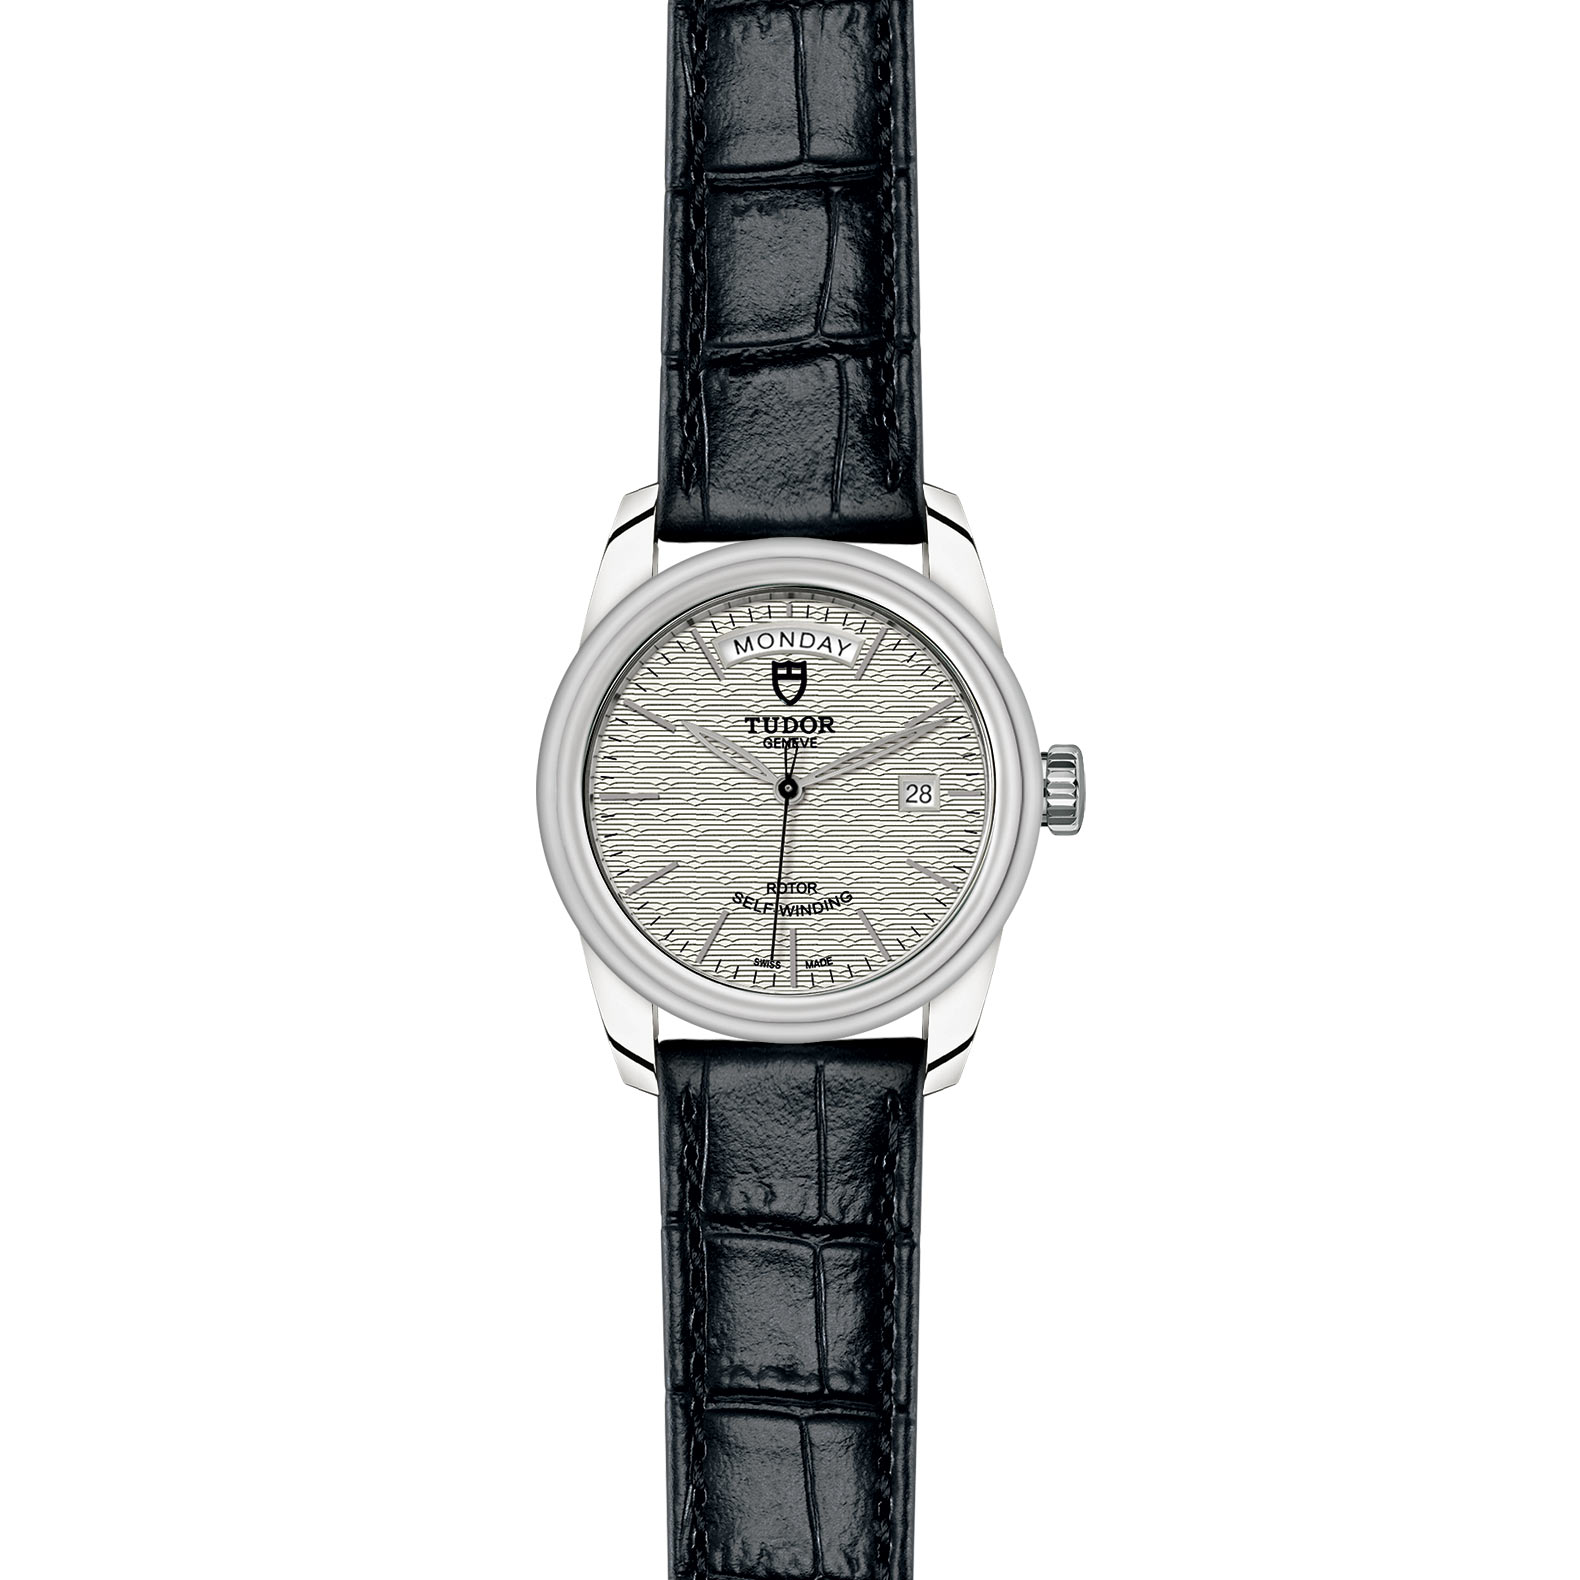 TUDOR Glamour Date Day M56000 0043 Frontfacing